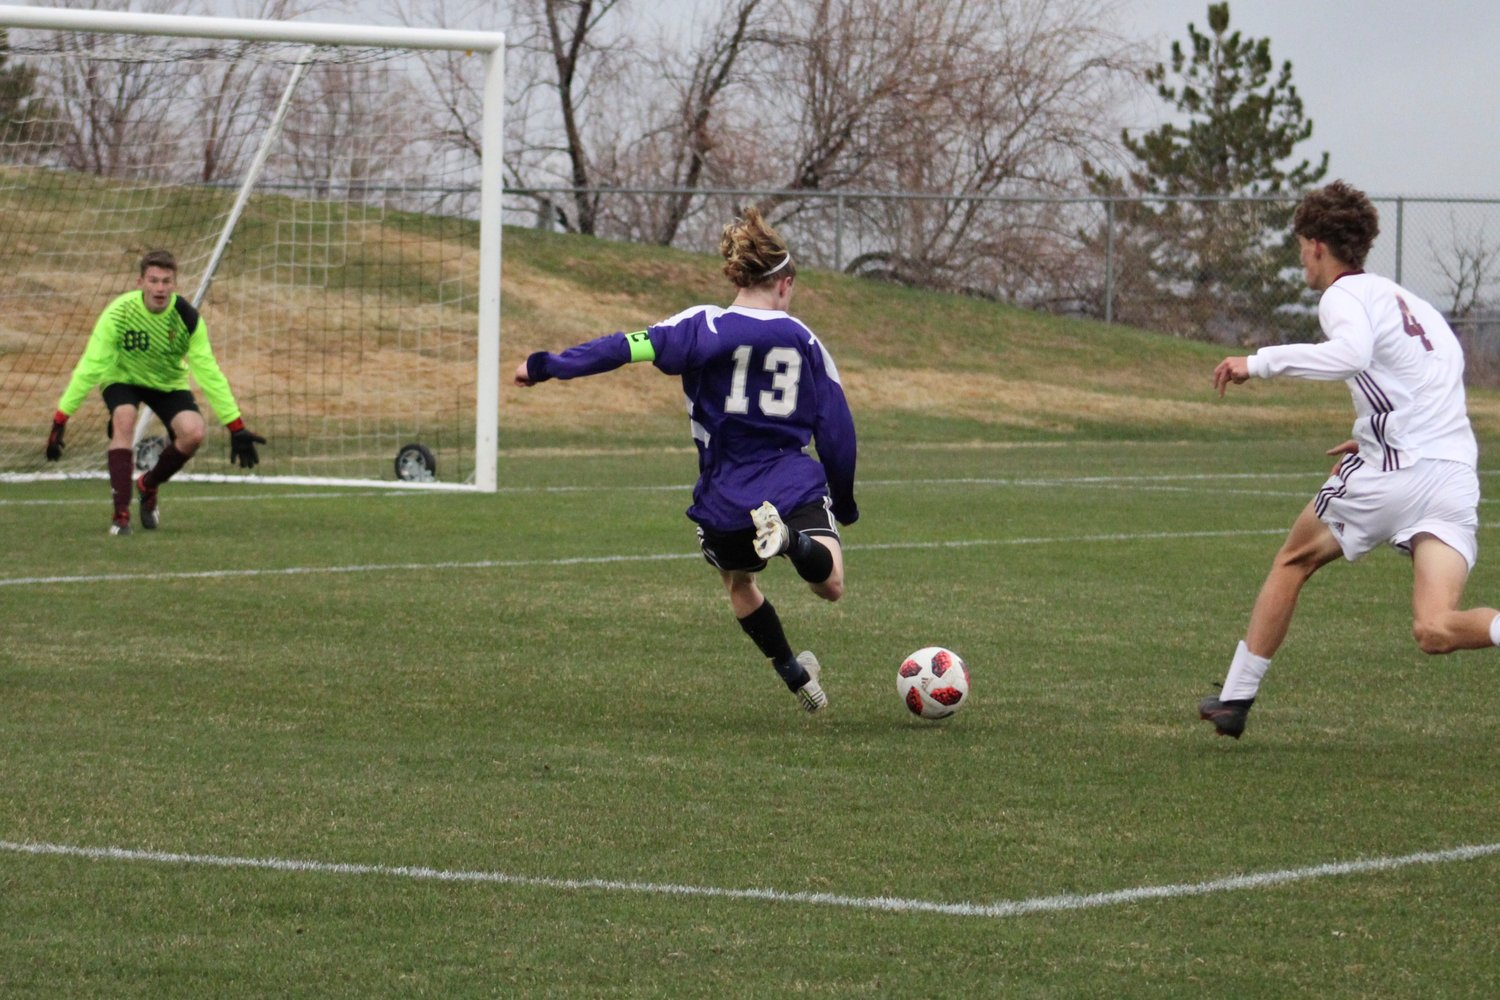 Arvada West's Noah Kanagy breaks behind the Golden defense and tries a shot on net in the Wildcat's 3-0 win over the Demons.